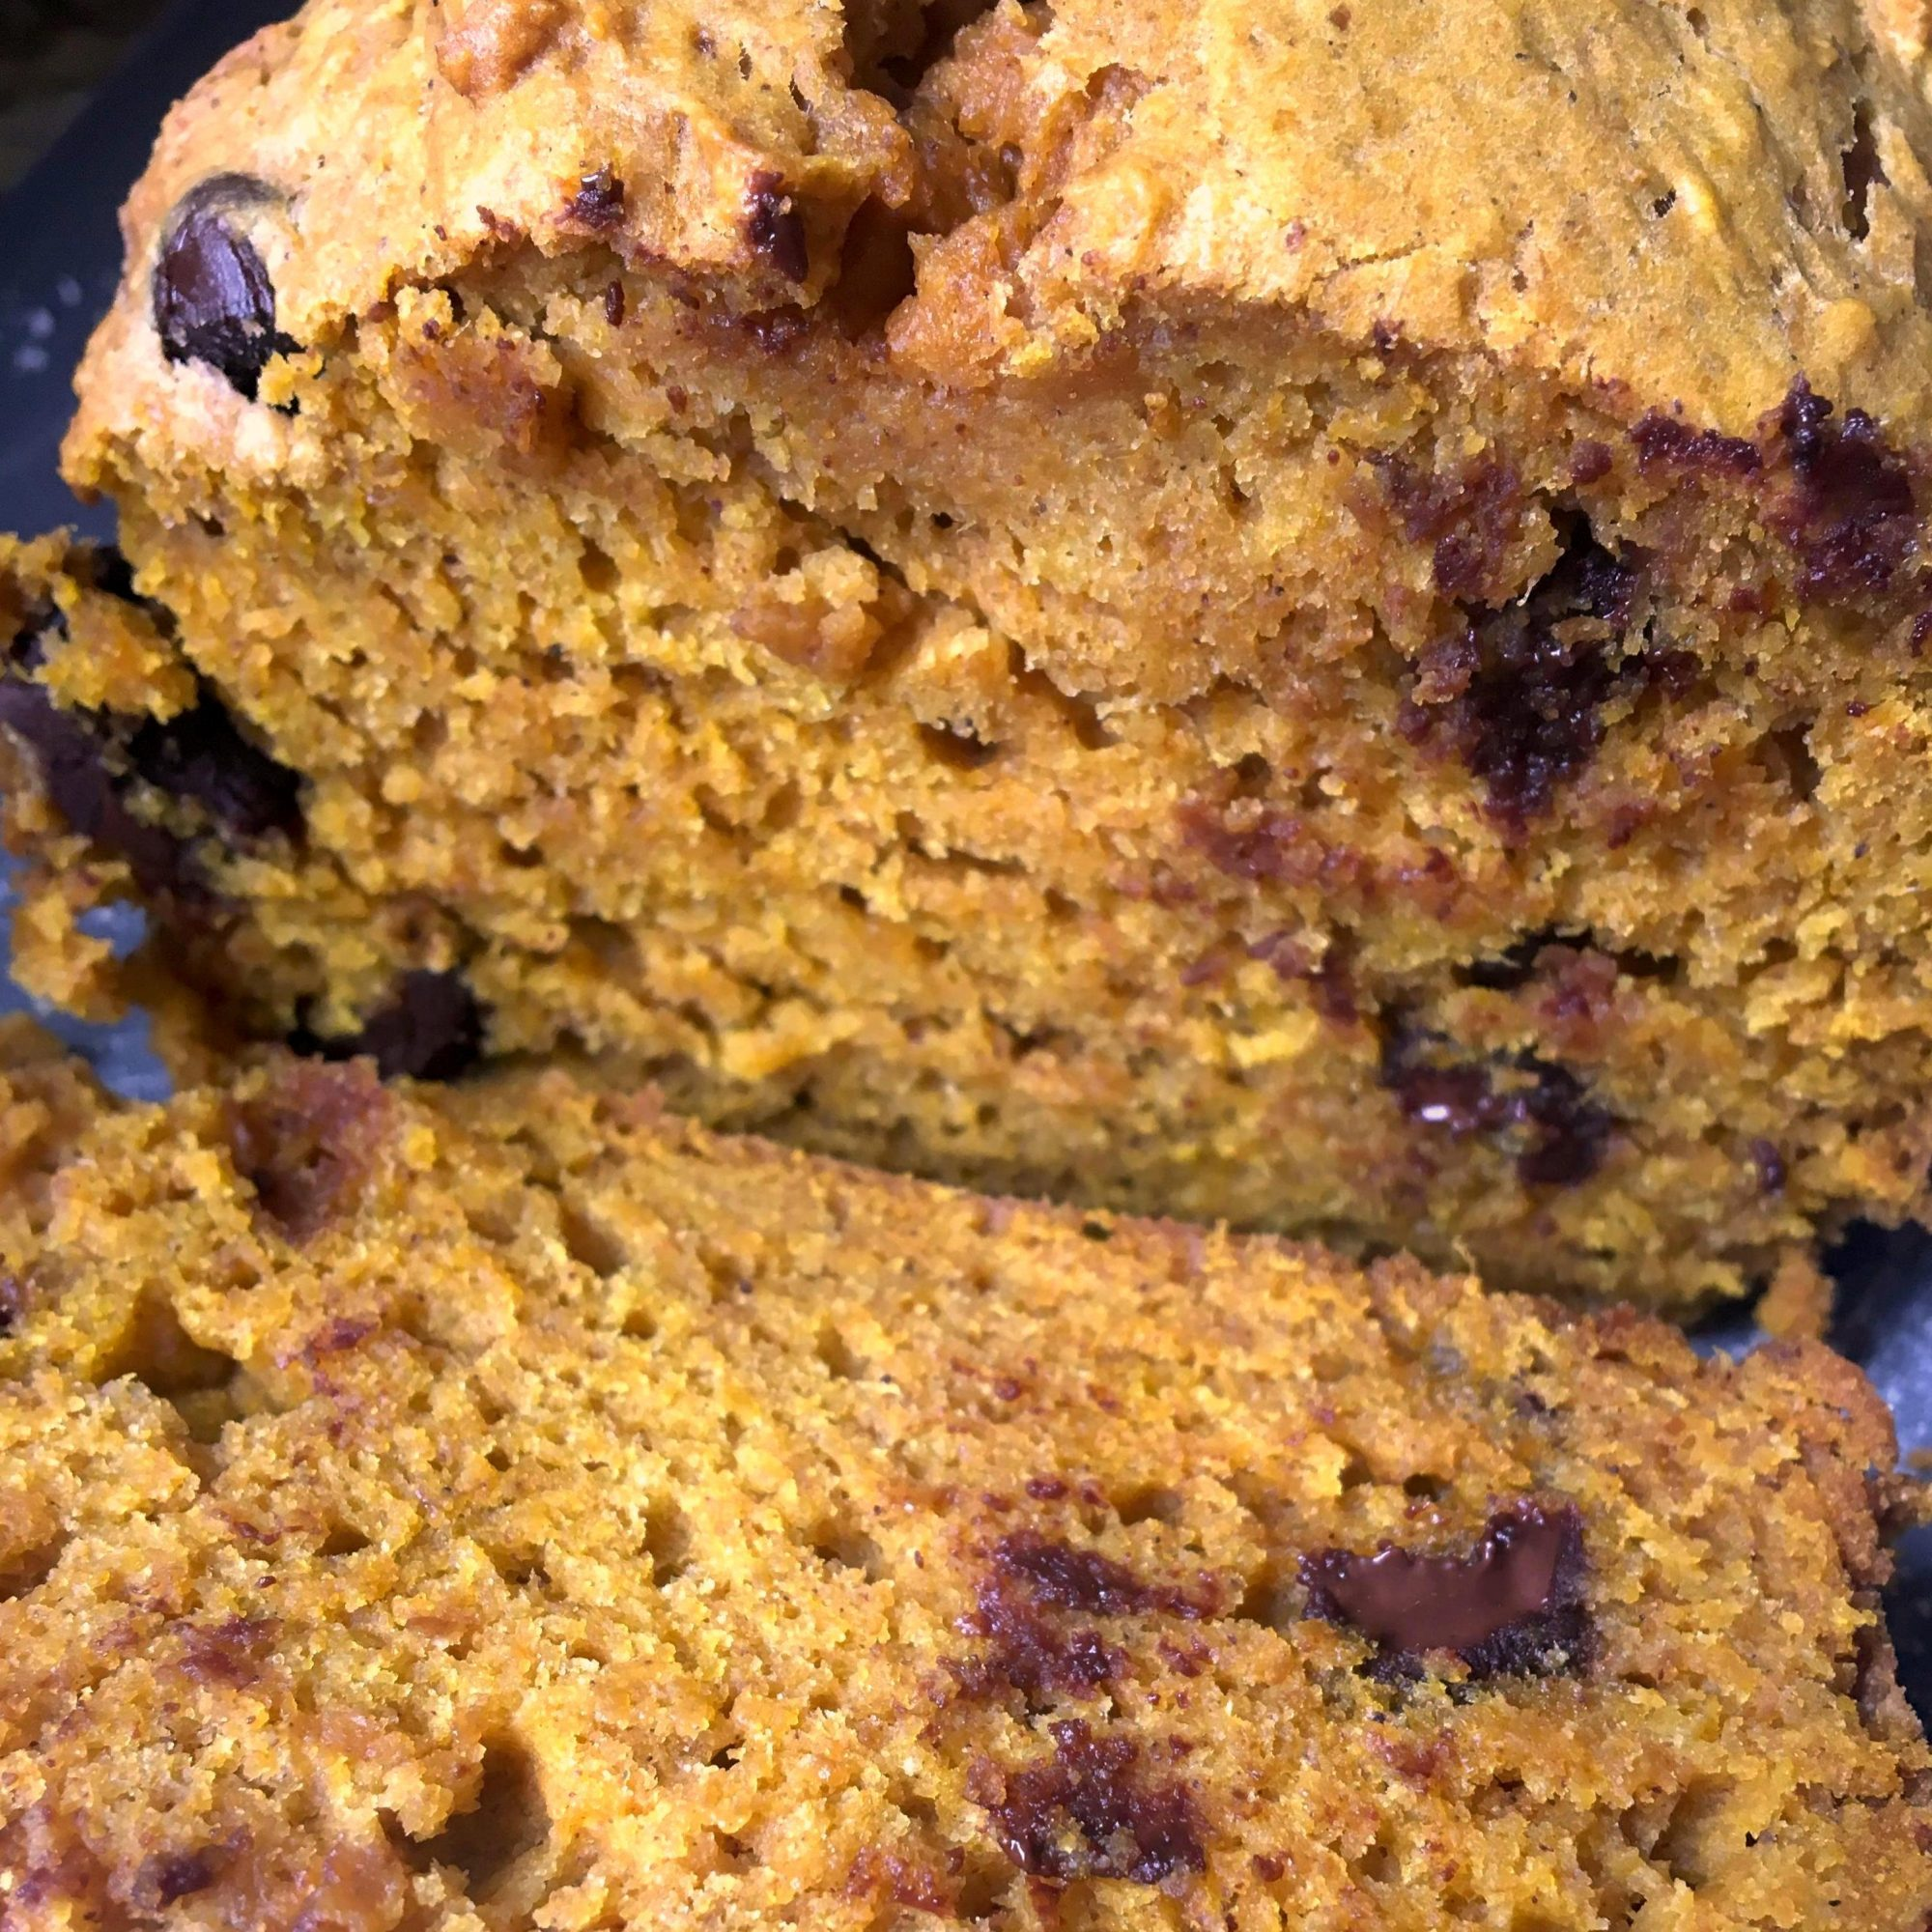 Chef John's Holiday Pumpkin Bread sliced